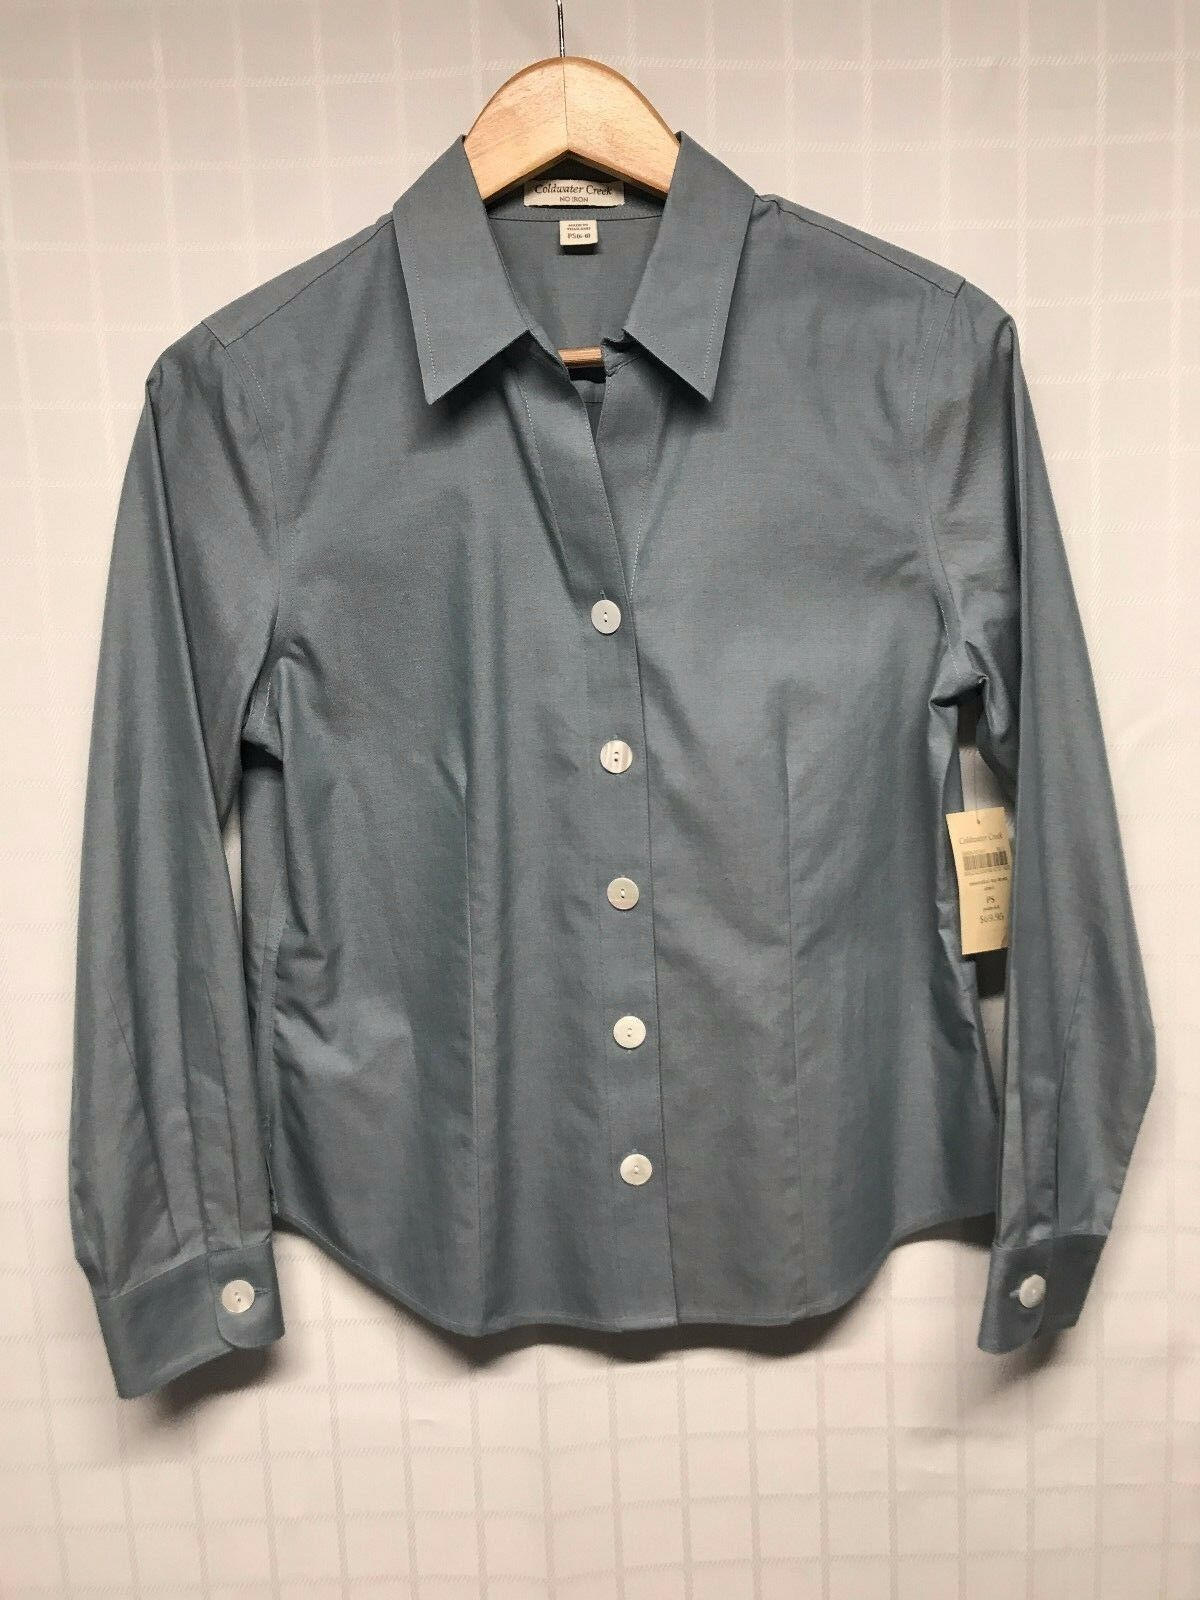 Coldwater Creek   Woherren Dress Shirt   Button Down Long Sleeve   PS 68